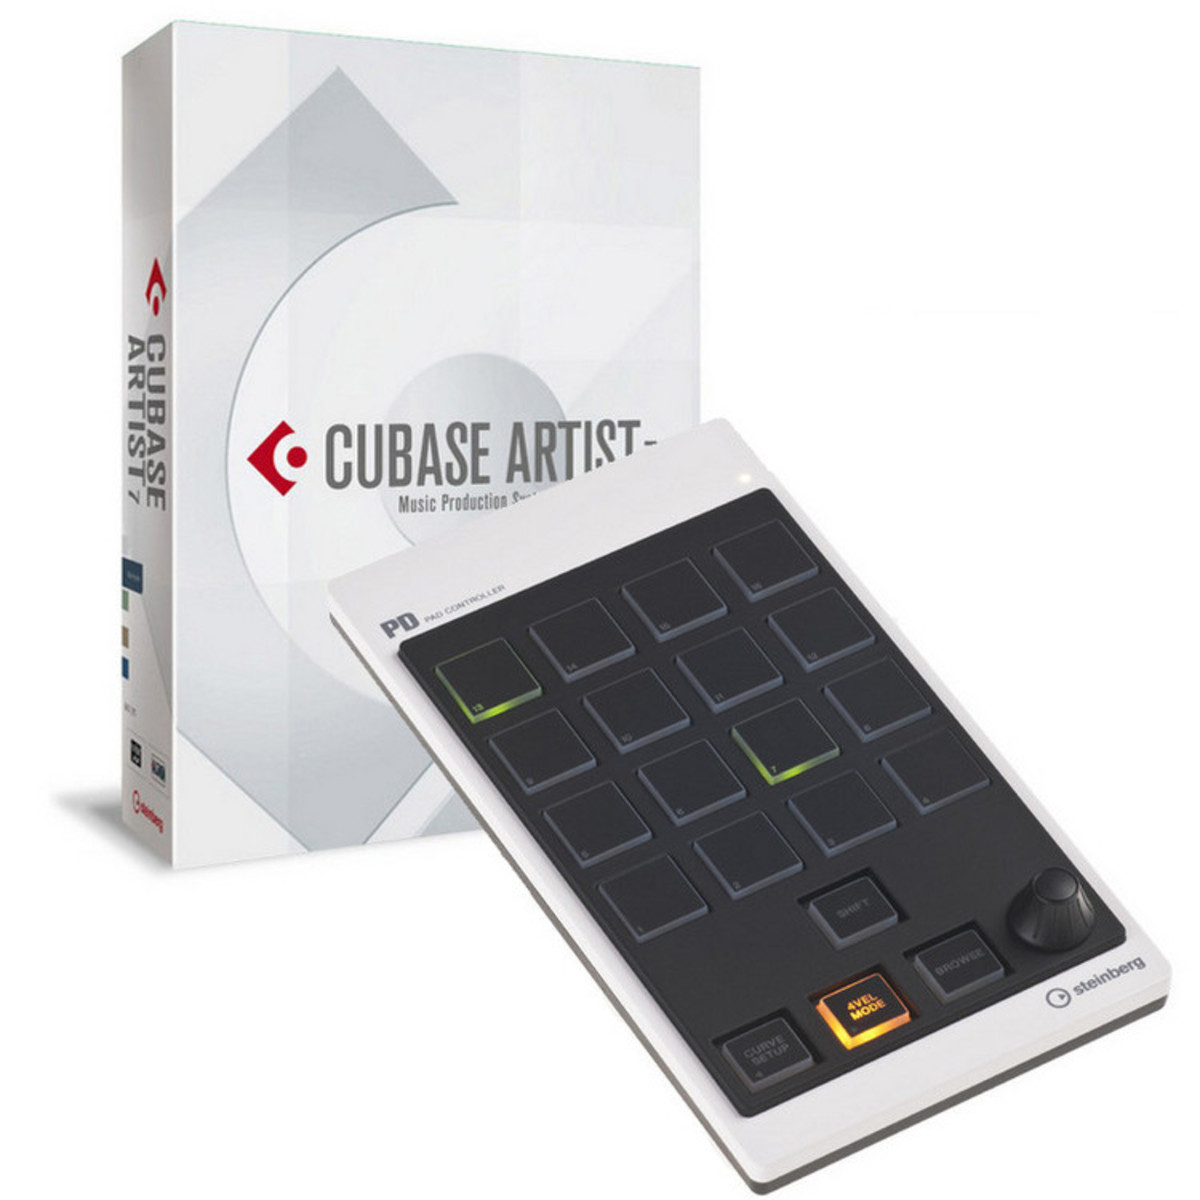 disc steinberg cubase artist 7 5 and cmc pd pad controller bundle at gear4music. Black Bedroom Furniture Sets. Home Design Ideas